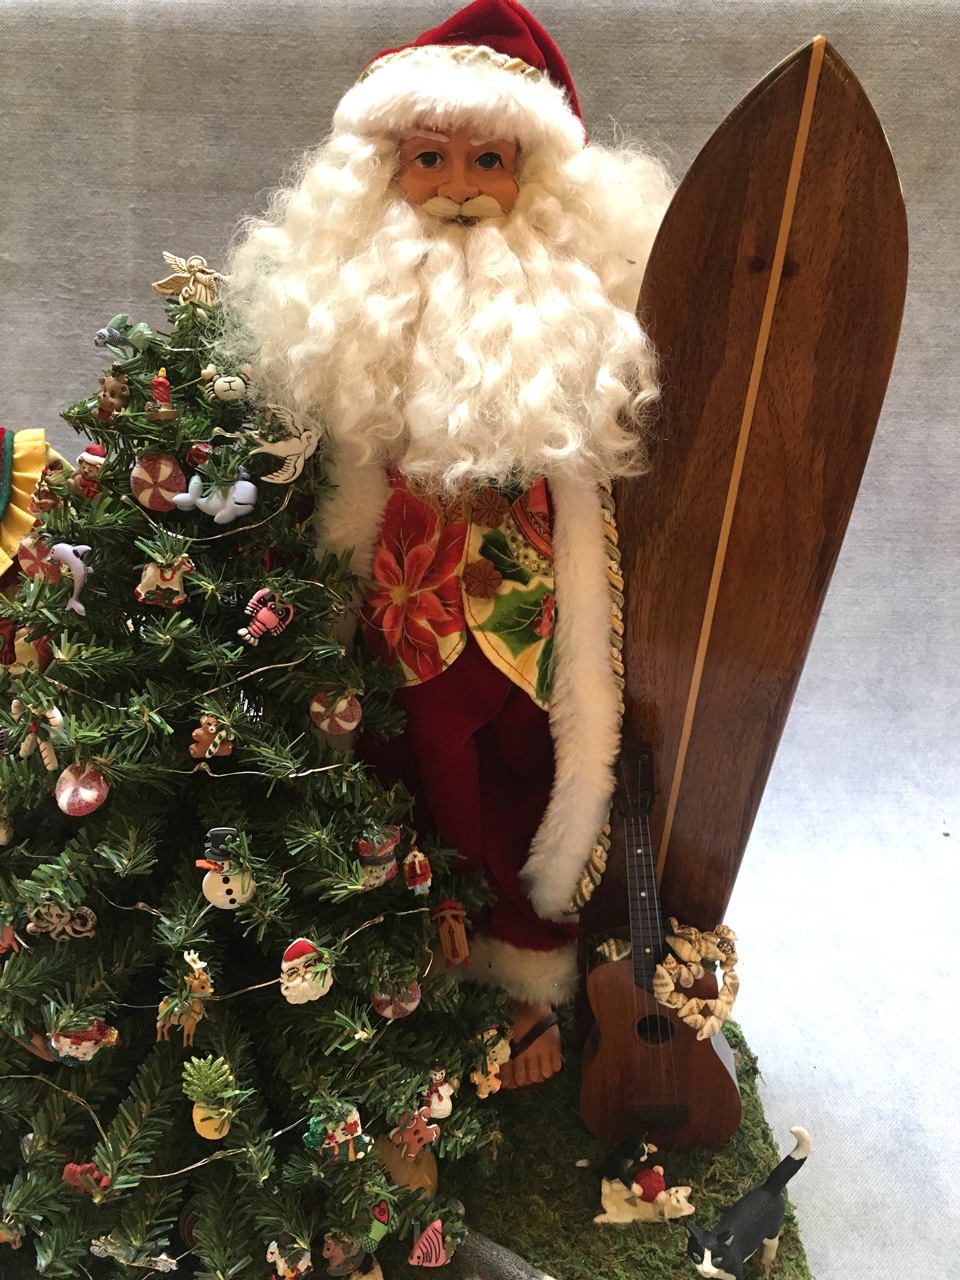 Santa Claus standing by Christmas tree